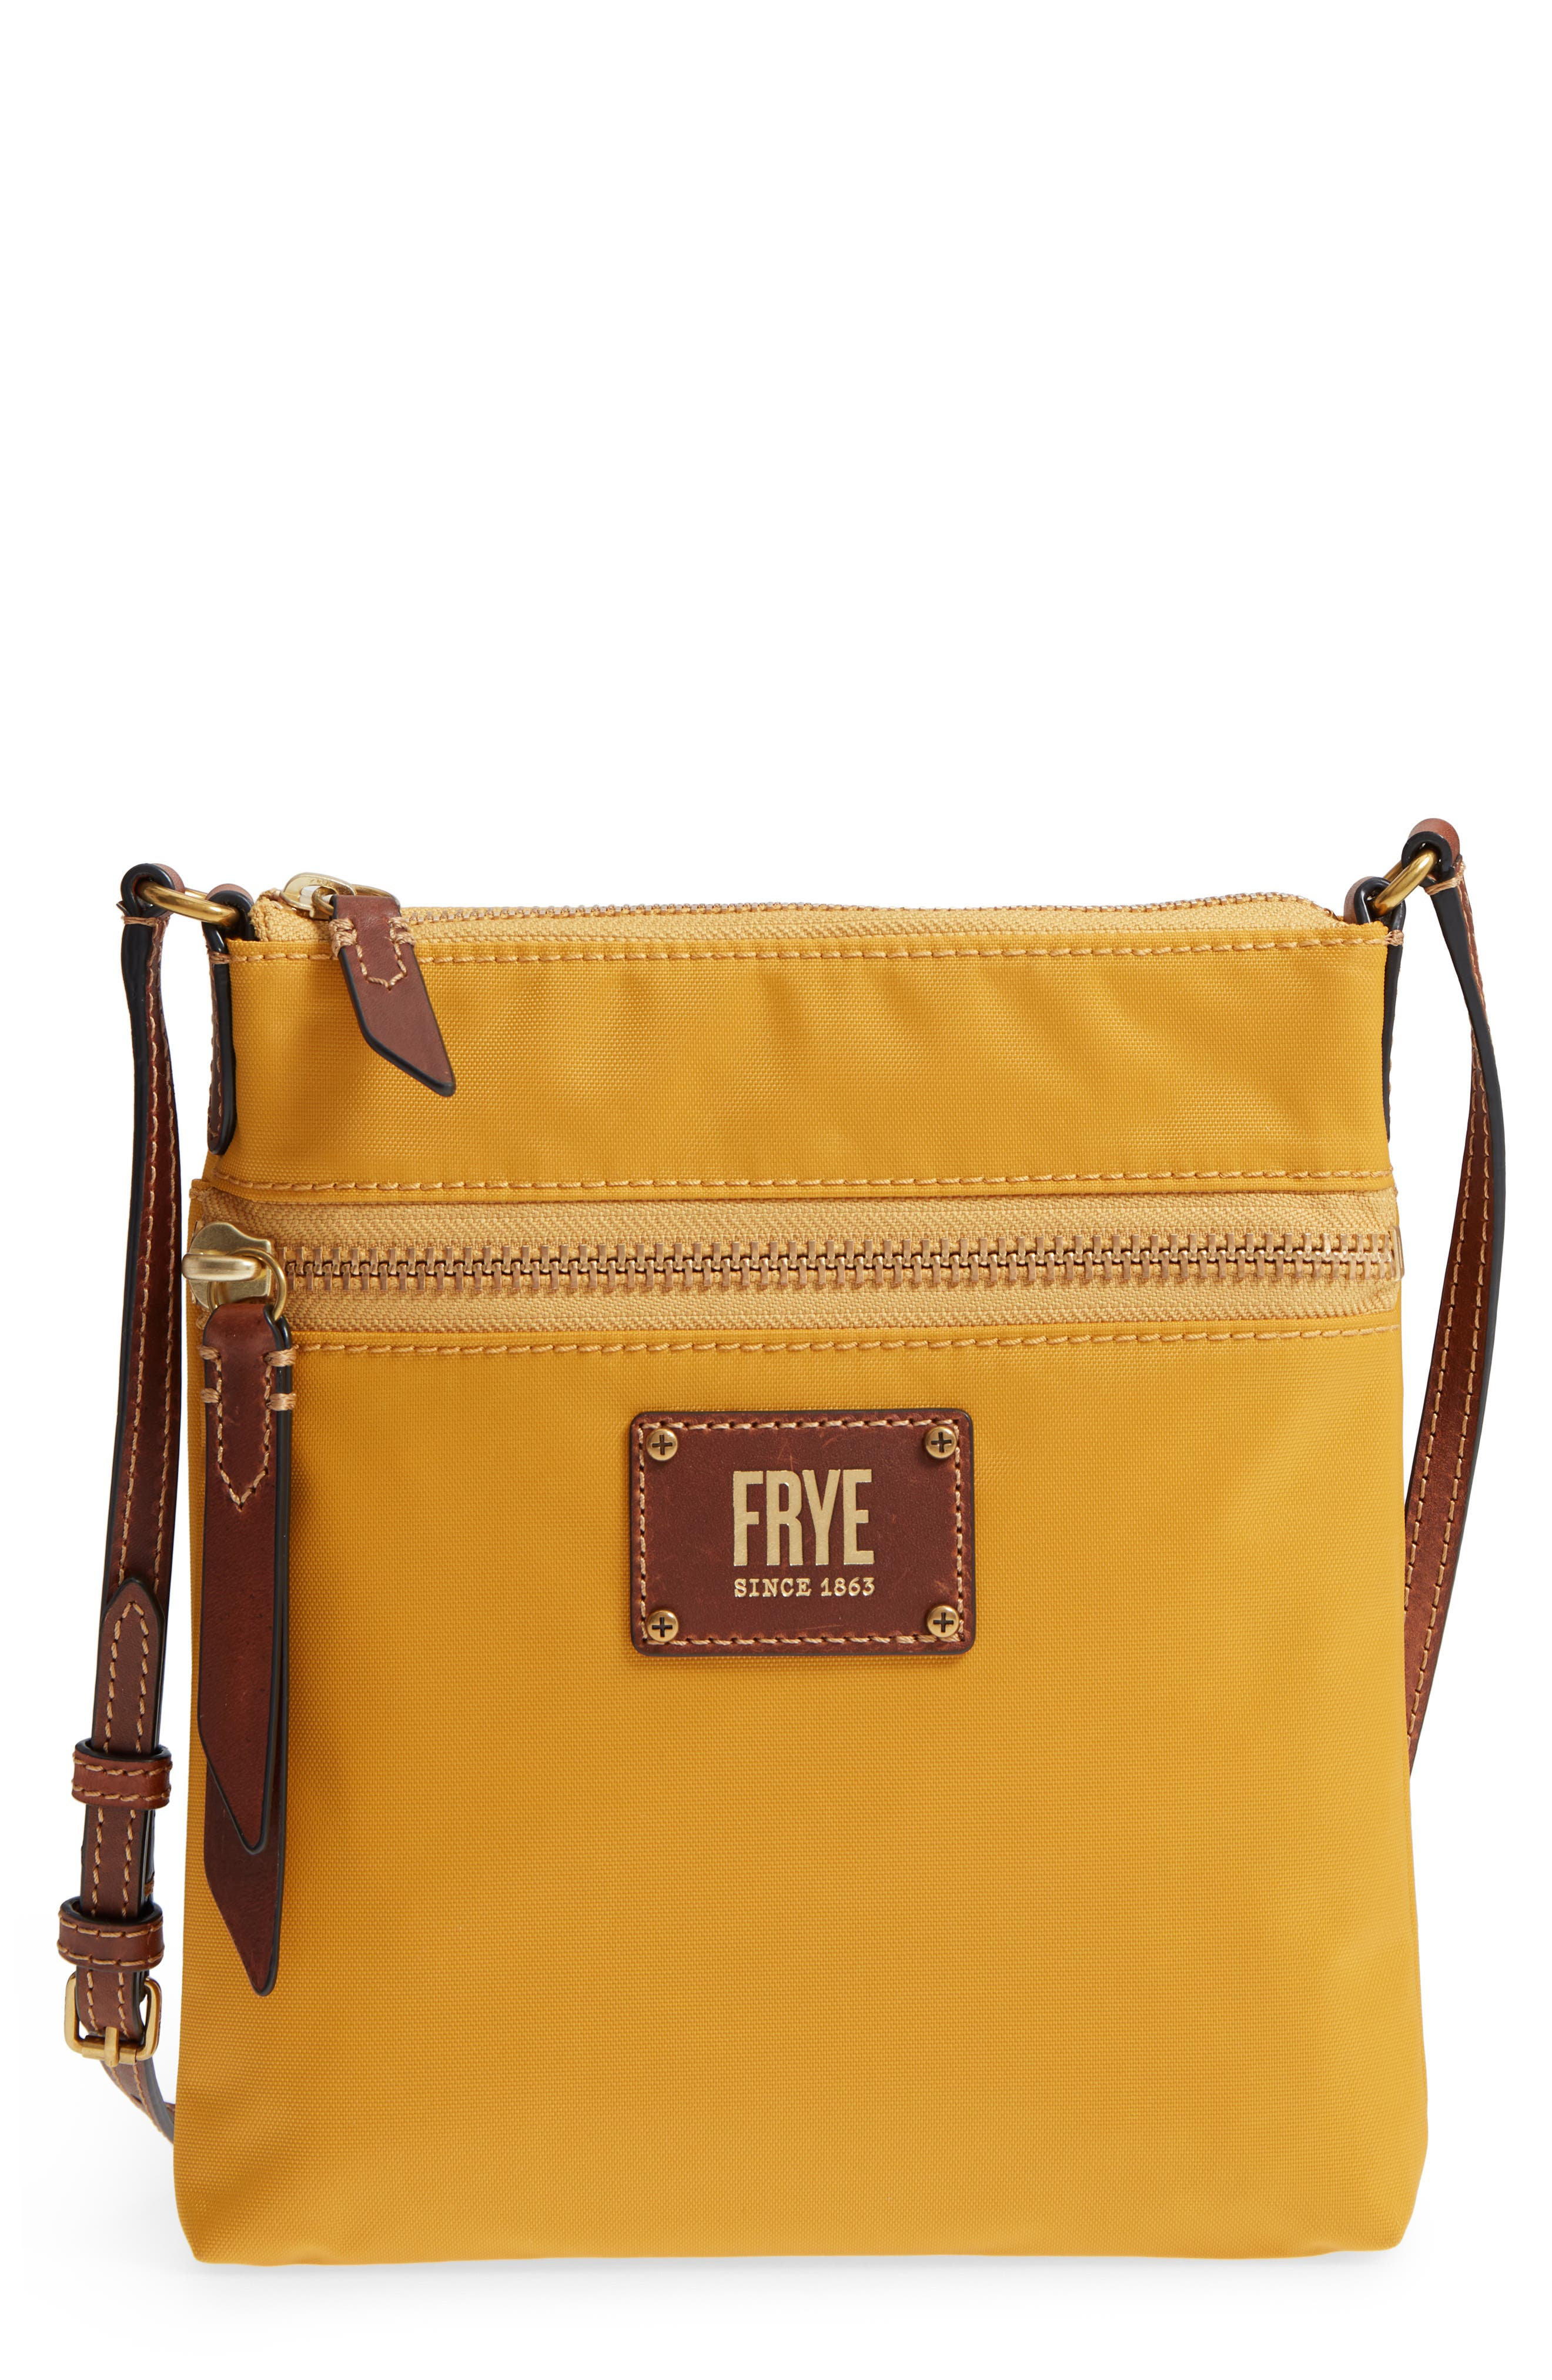 37612afaa1 FRYE IVY NYLON CROSSBODY BAG - YELLOW